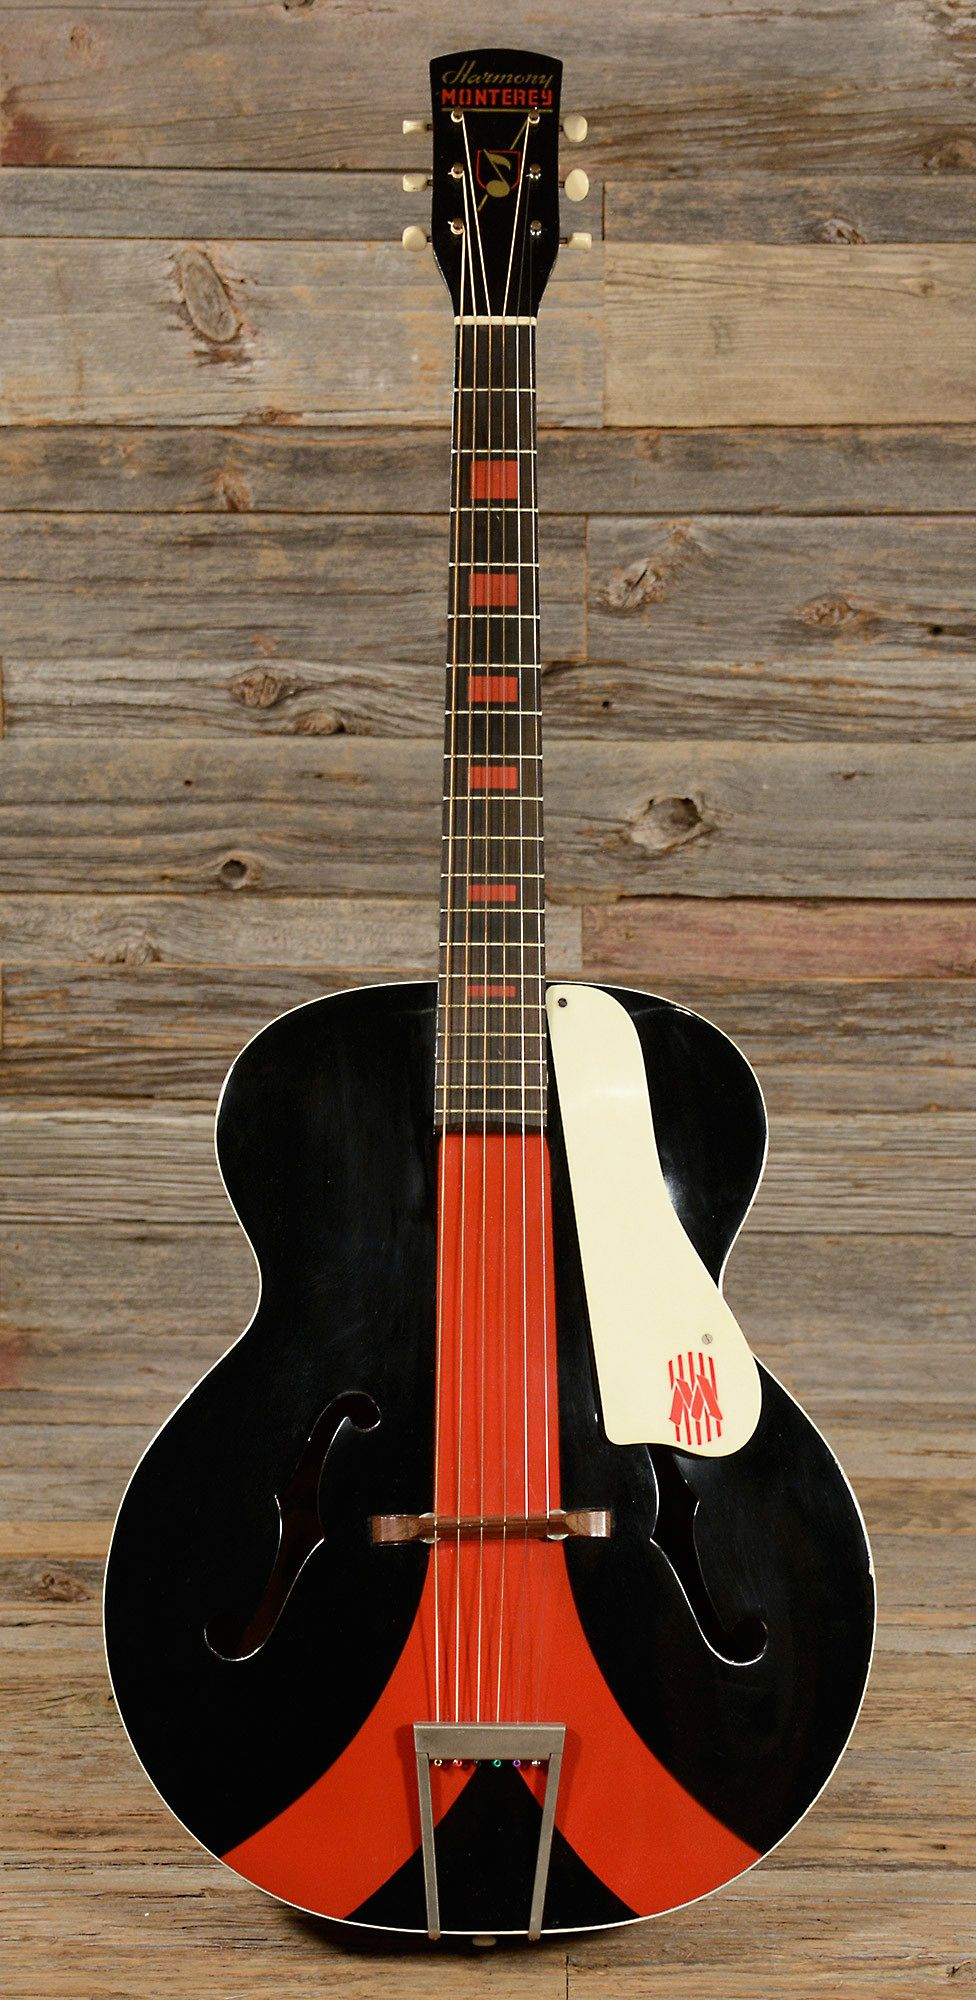 HARMONY Monterey Colorama Archtop Black/Red 1958 (s952)